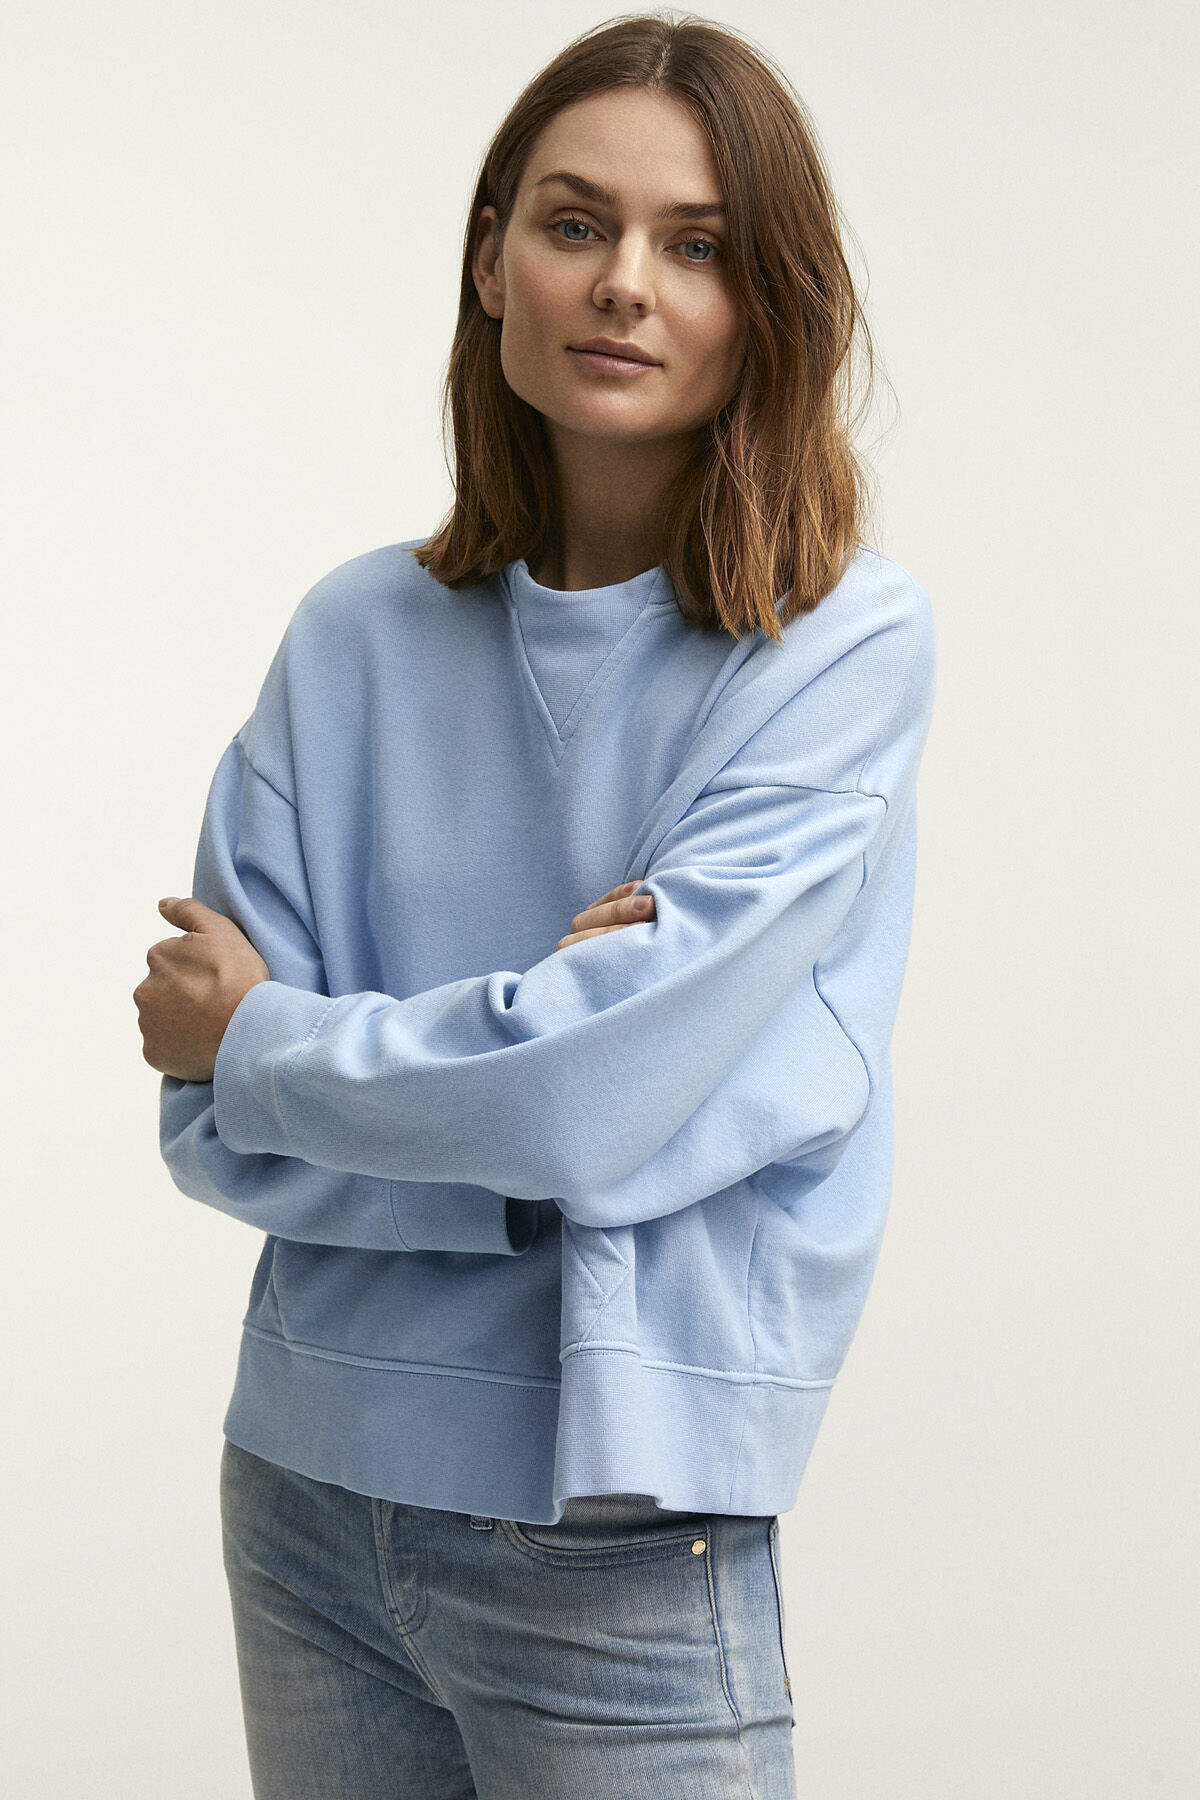 LOXFORD SWEATSHIRT Premium Loopback Cotton - Relaxed Fit